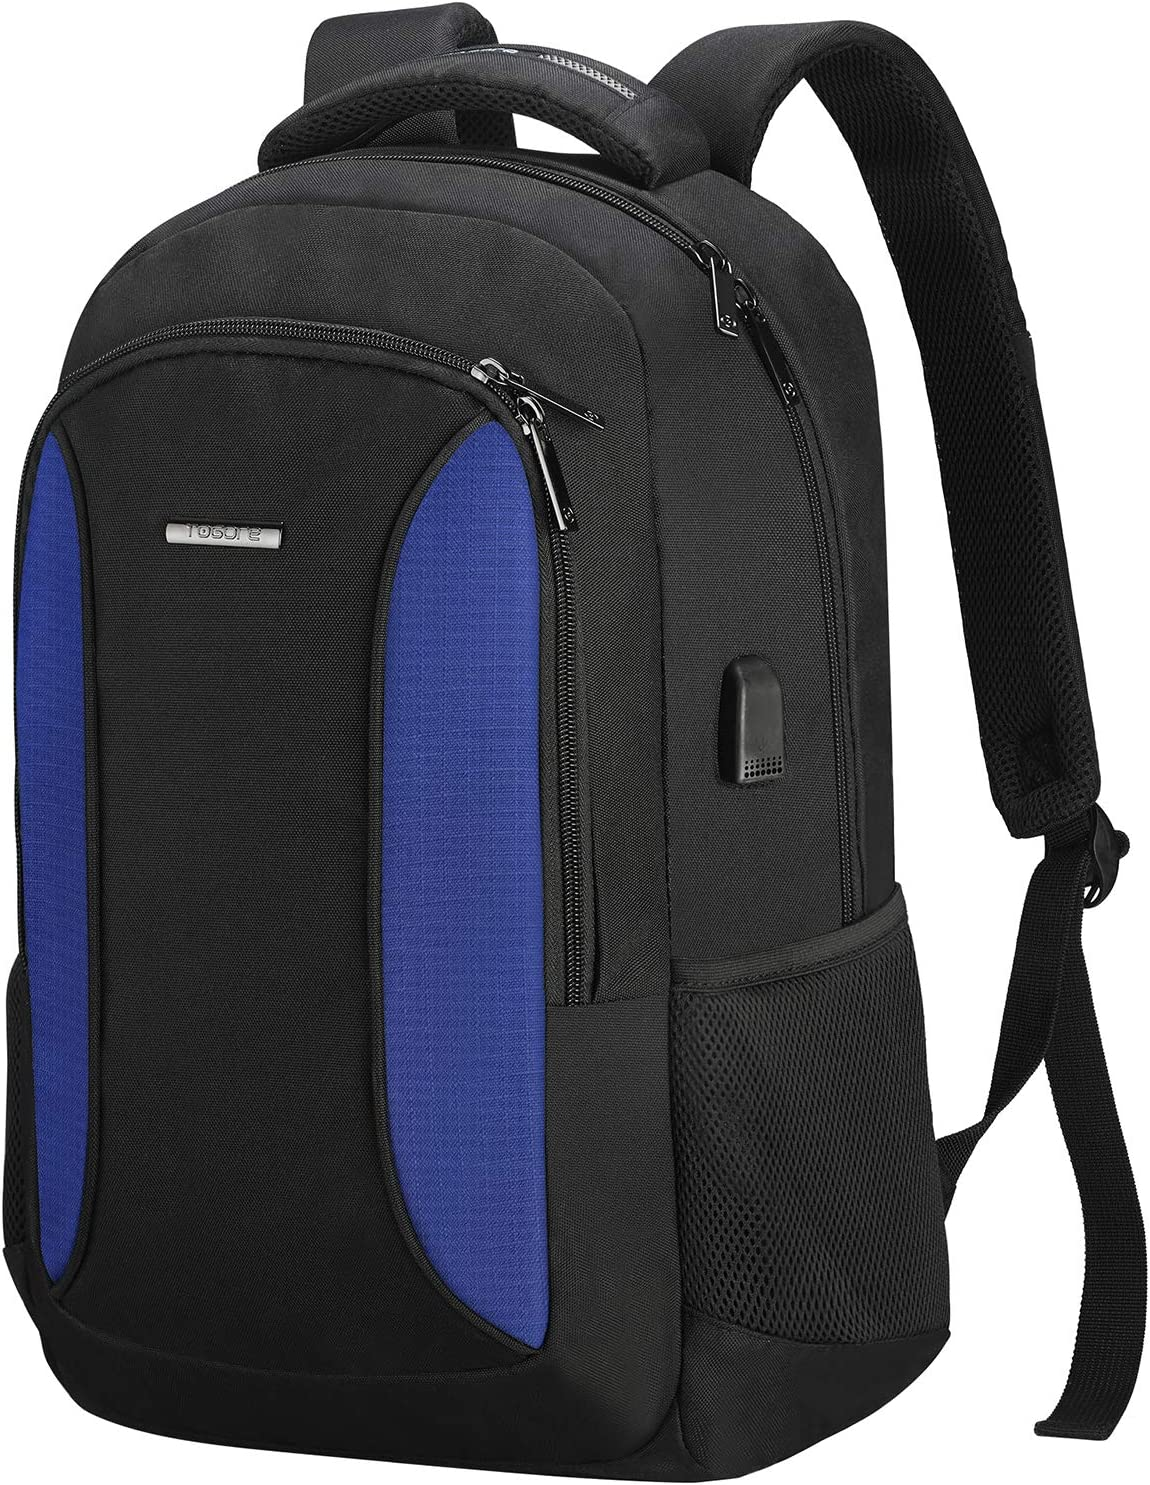 TOGORE WorkGo Slim Laptop Backpack 15.6 Inch, Water Resistant Travel Business Computer Backpack with USB Charging Port for Women & Men - Blue